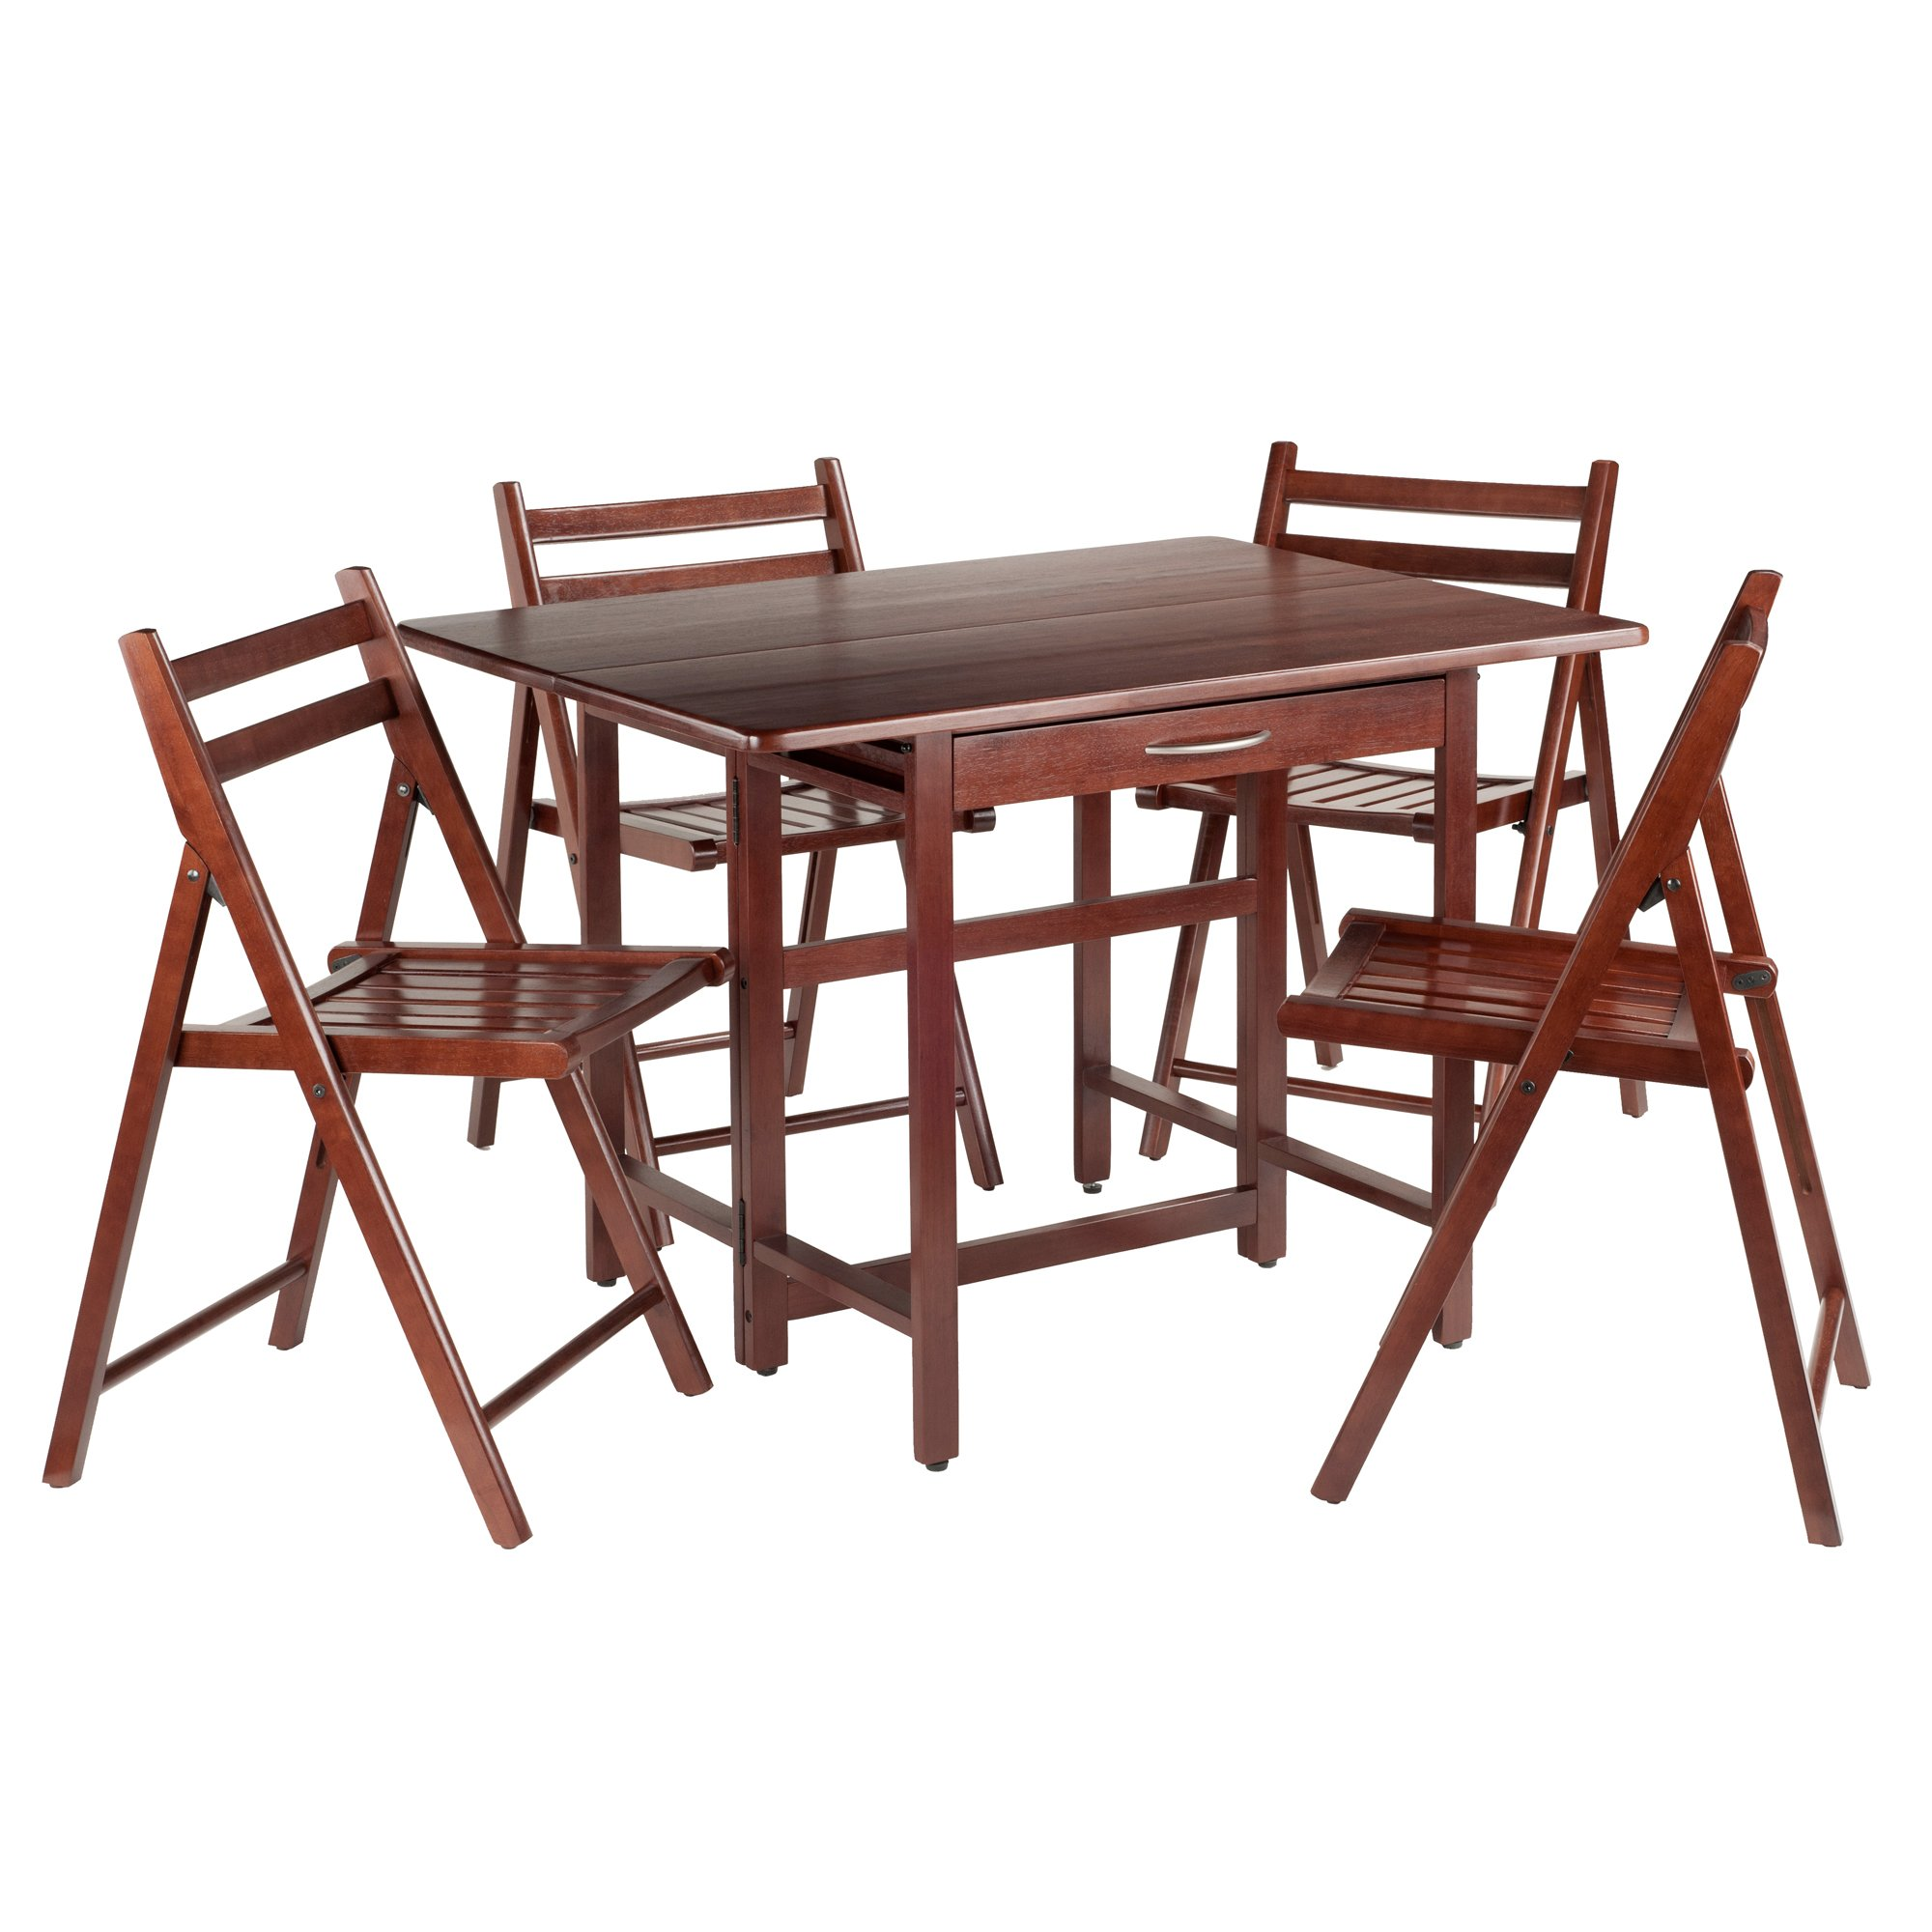 Winsome Wood Taylor 5-Pc Set Drop Leaf Table W/ 4 Folding Chairs by Winsome Wood